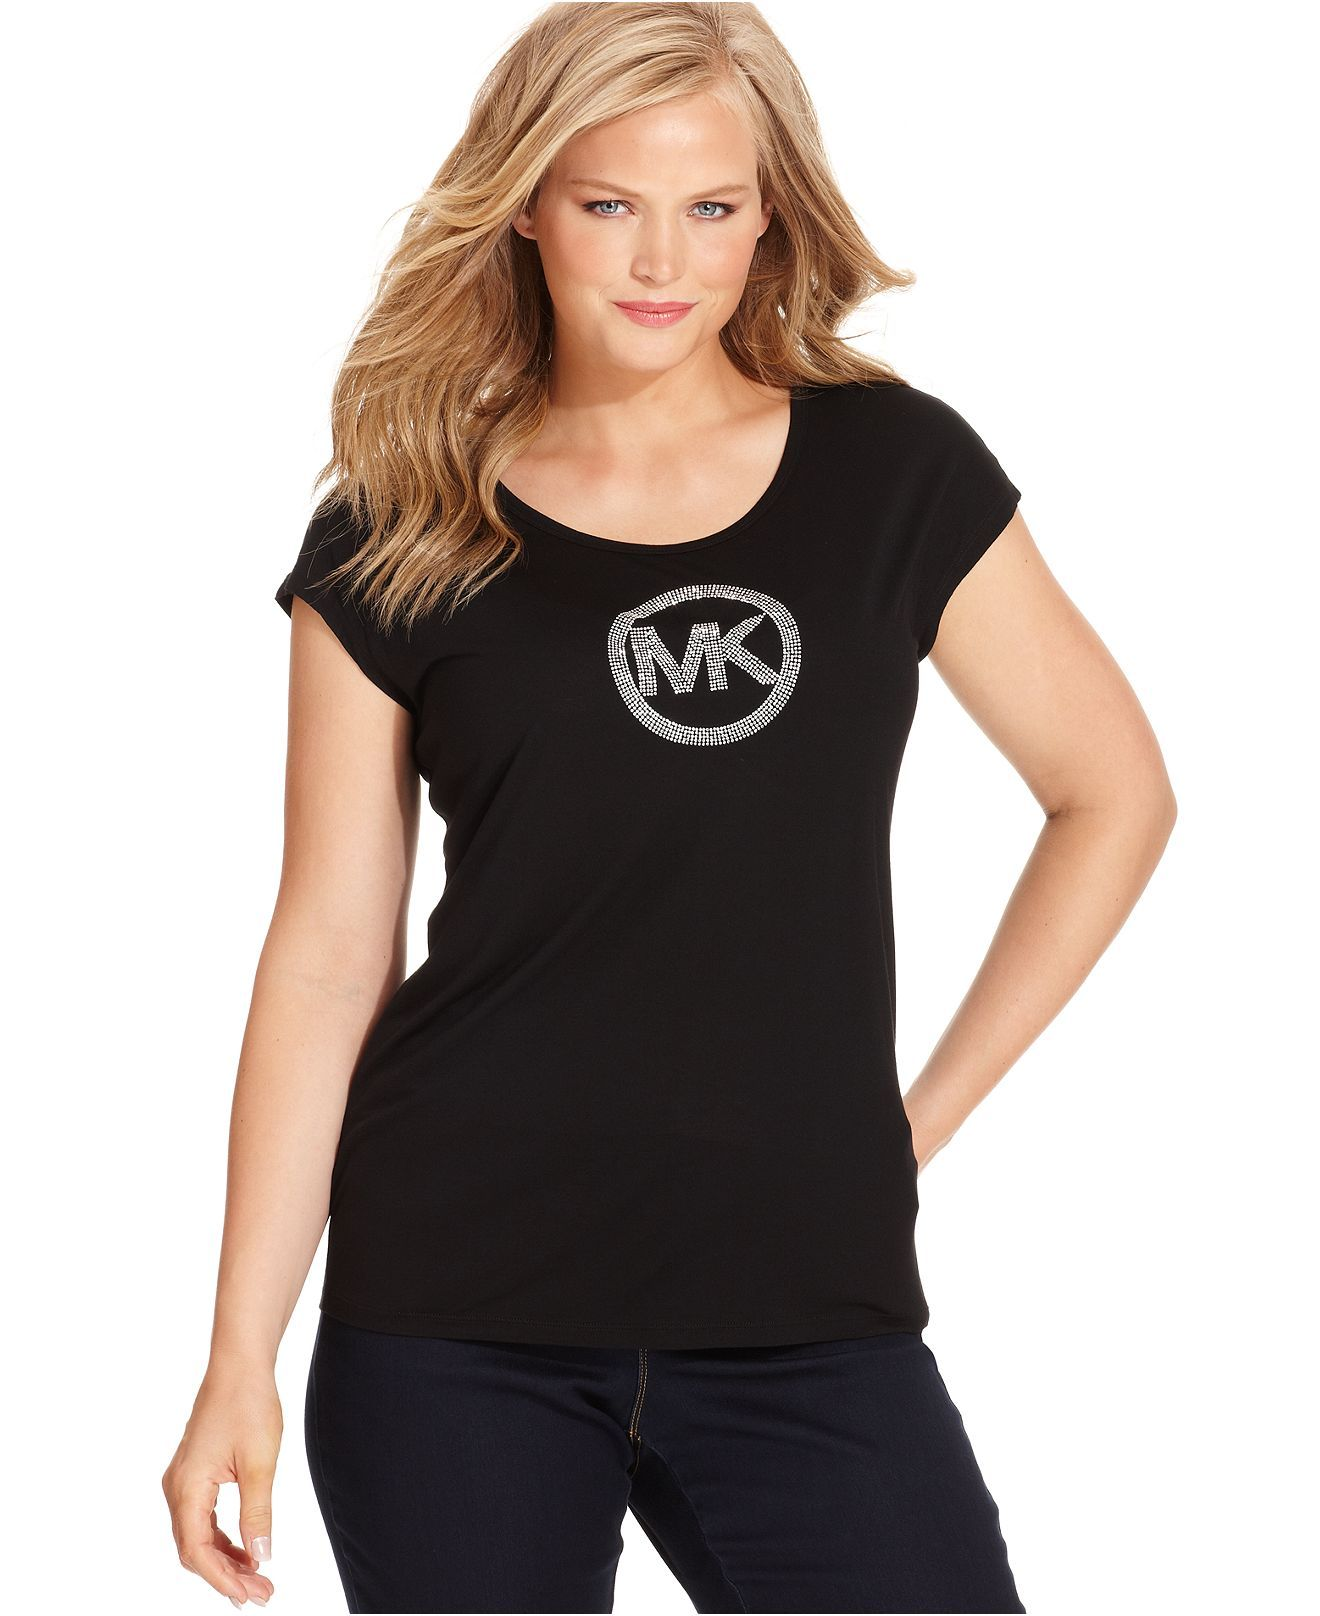 49b21589cfc MICHAEL Michael Kors Plus Size Short-Sleeve MK-Logo Tee - Plus Size Tops - Plus  Sizes - Macy s